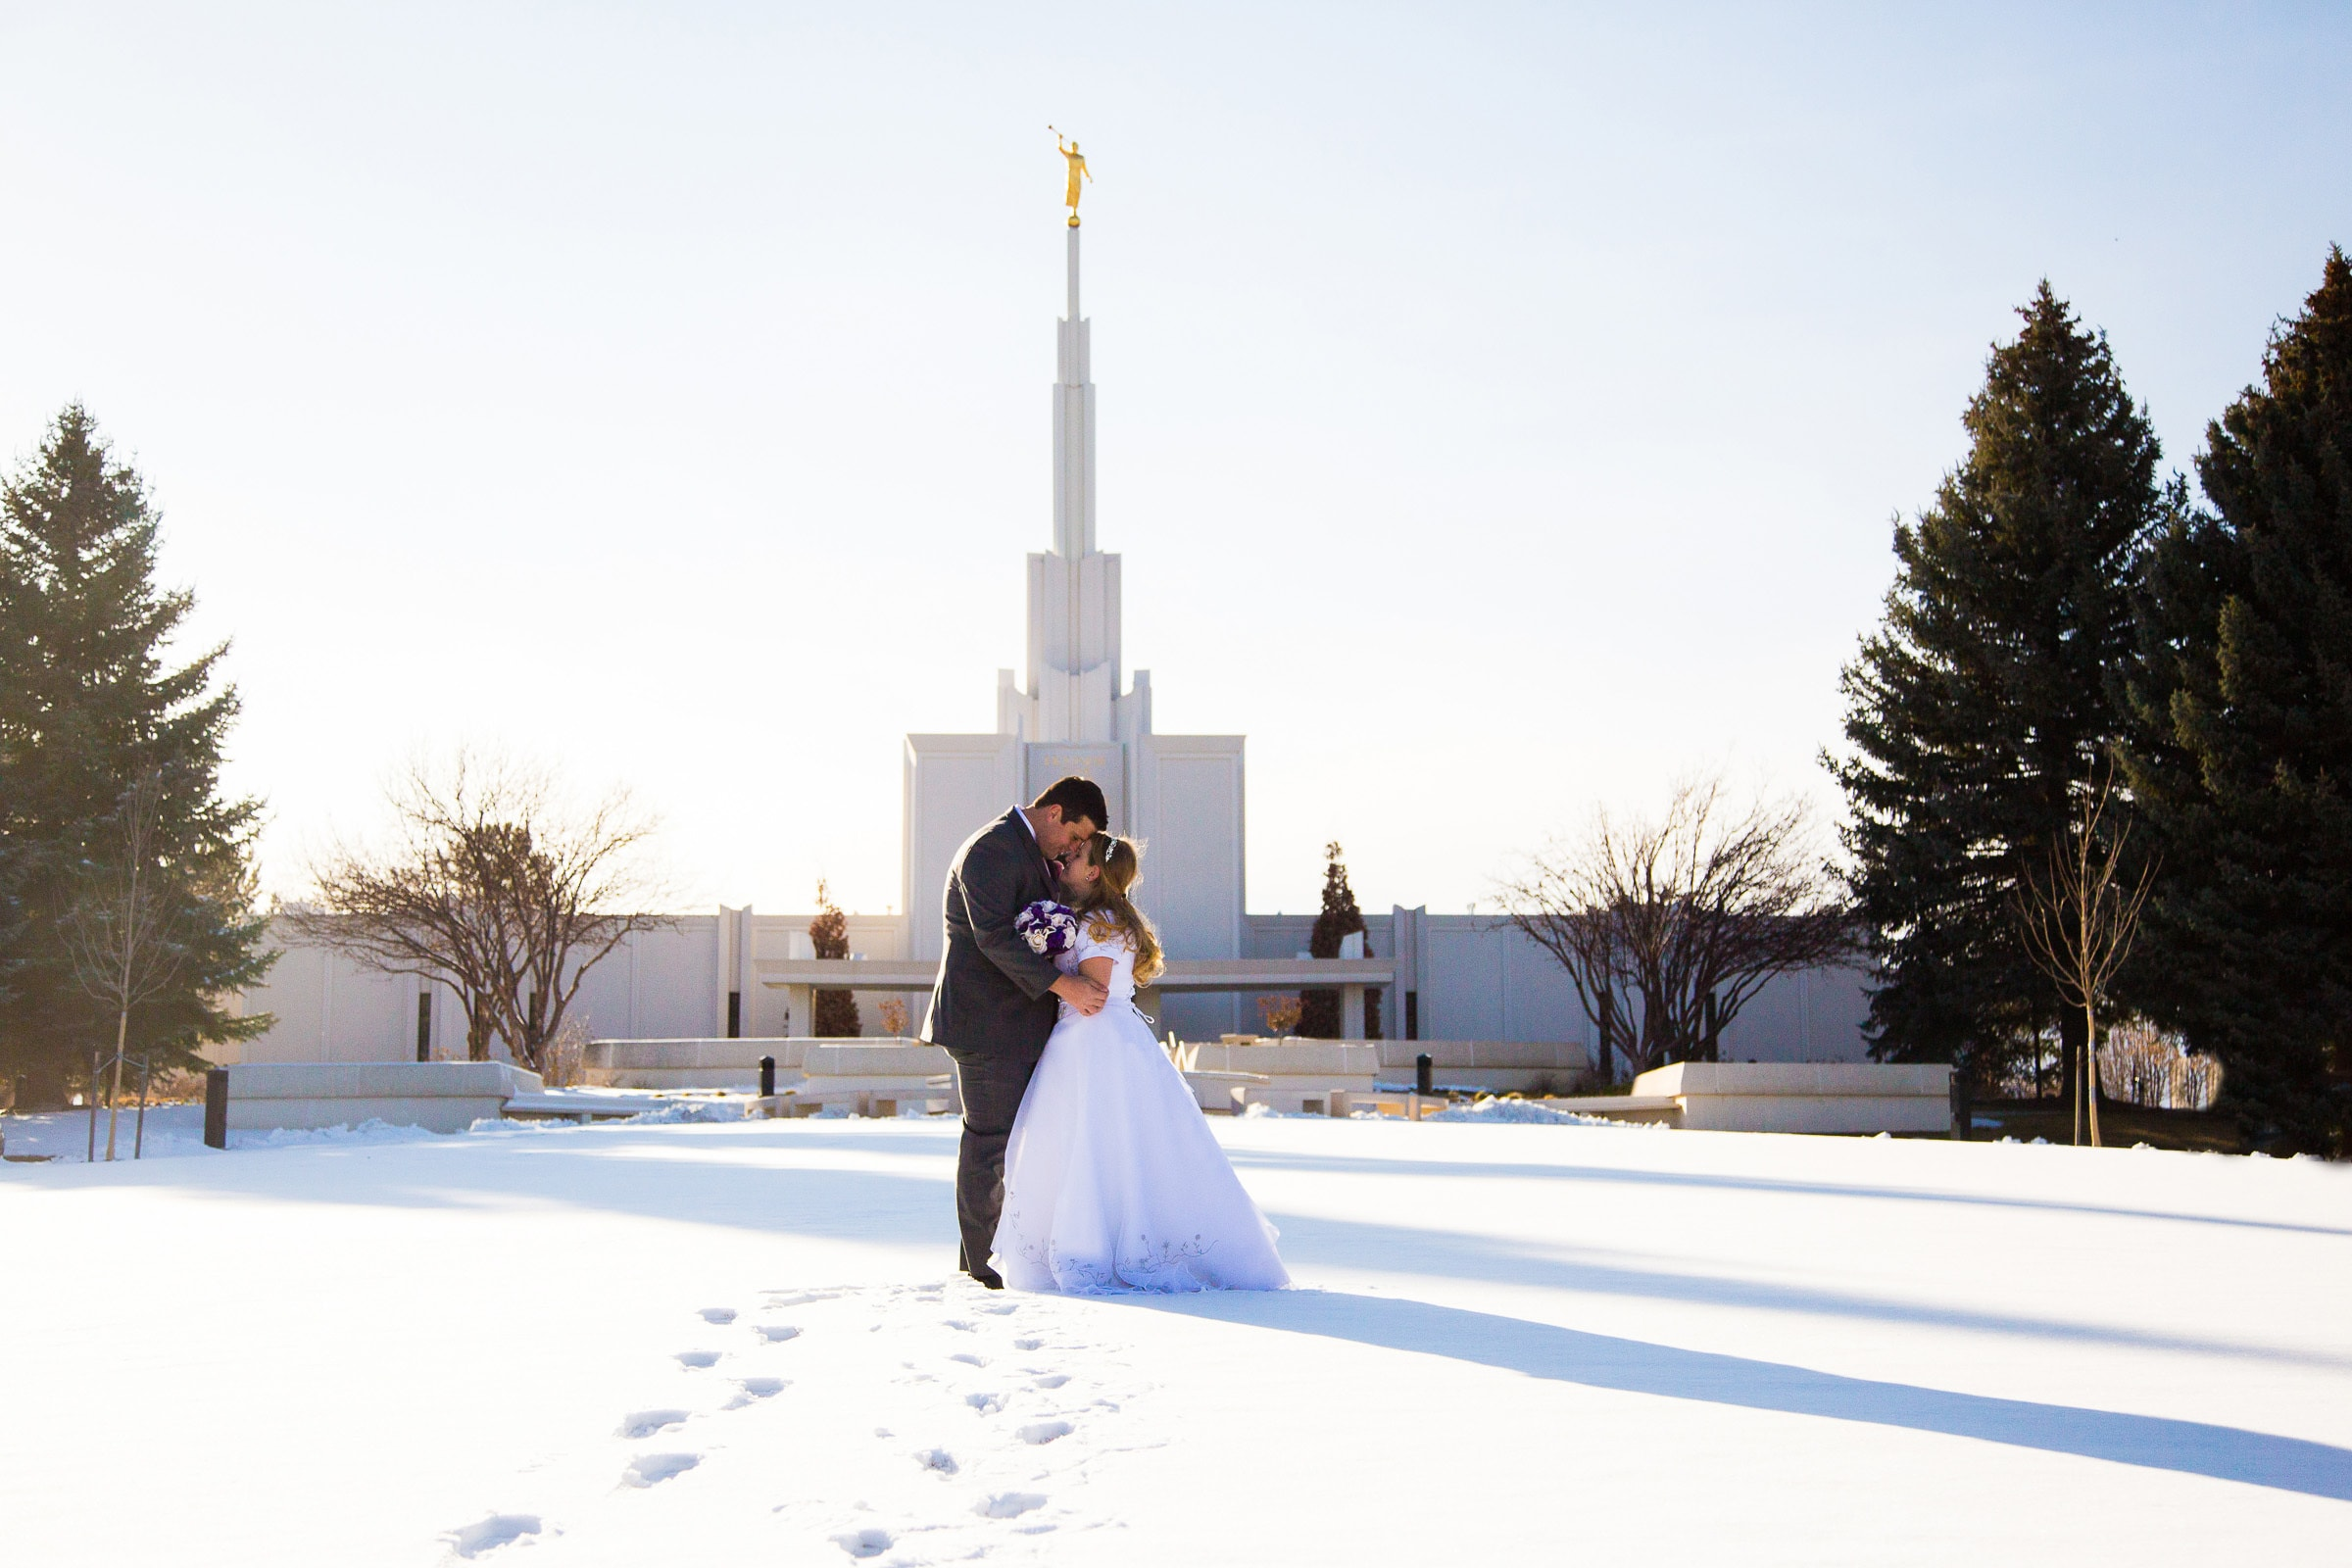 Spencer and Tiffany – Denver LDS Temple Wedding